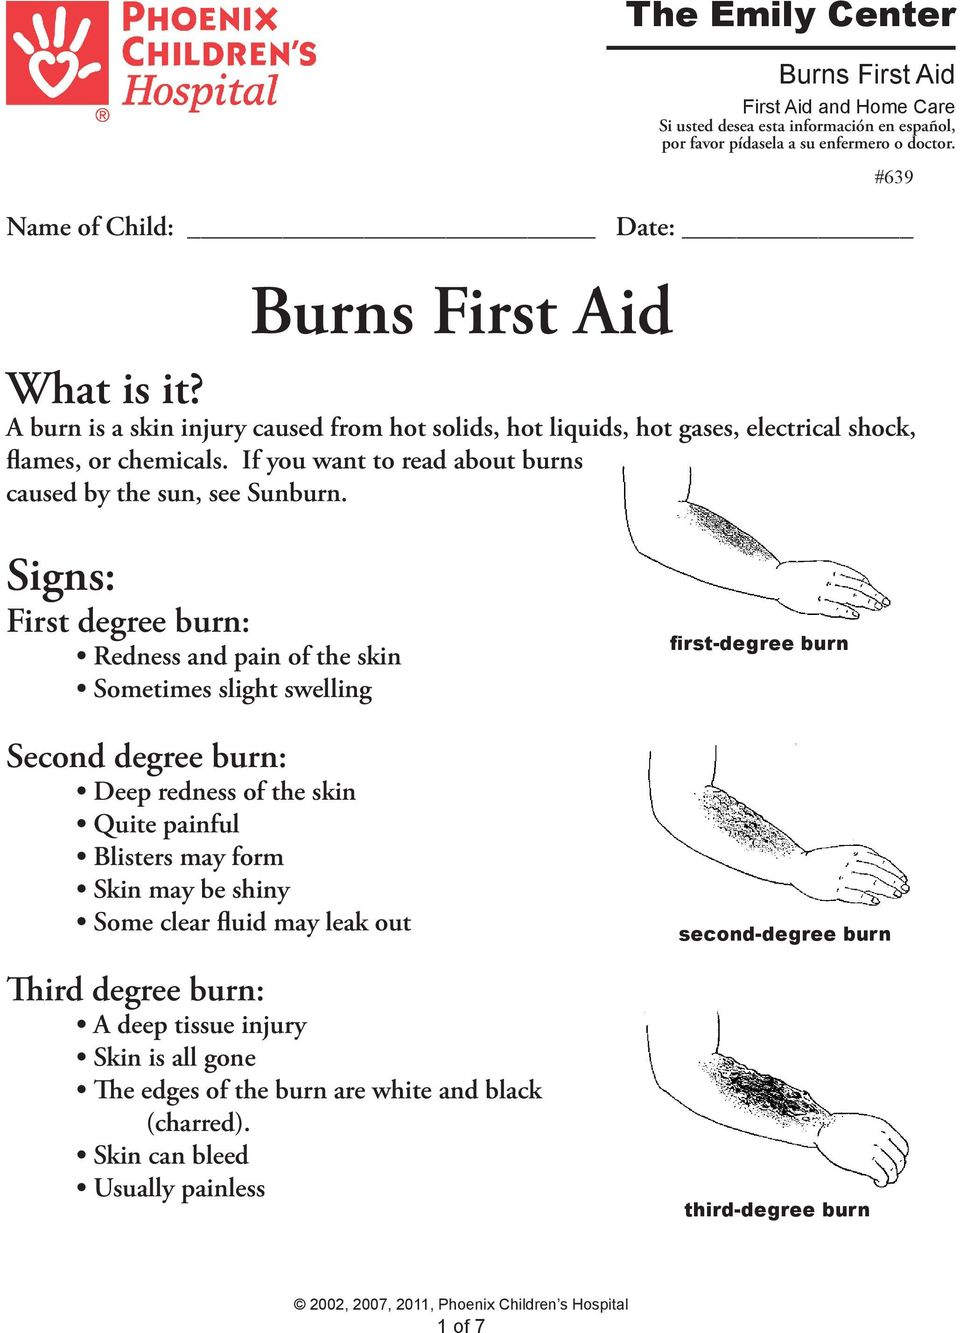 If you want to read about burns caused by the sun, see Sunburn.